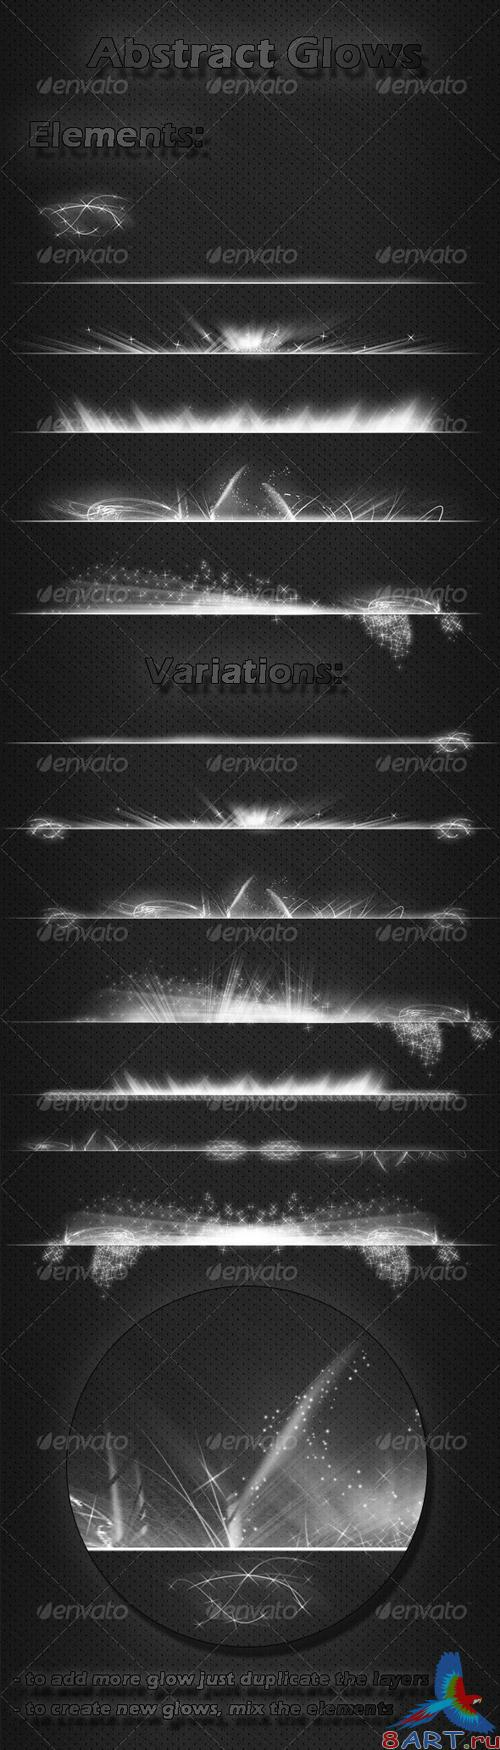 Abstract Glows - GraphicRiver